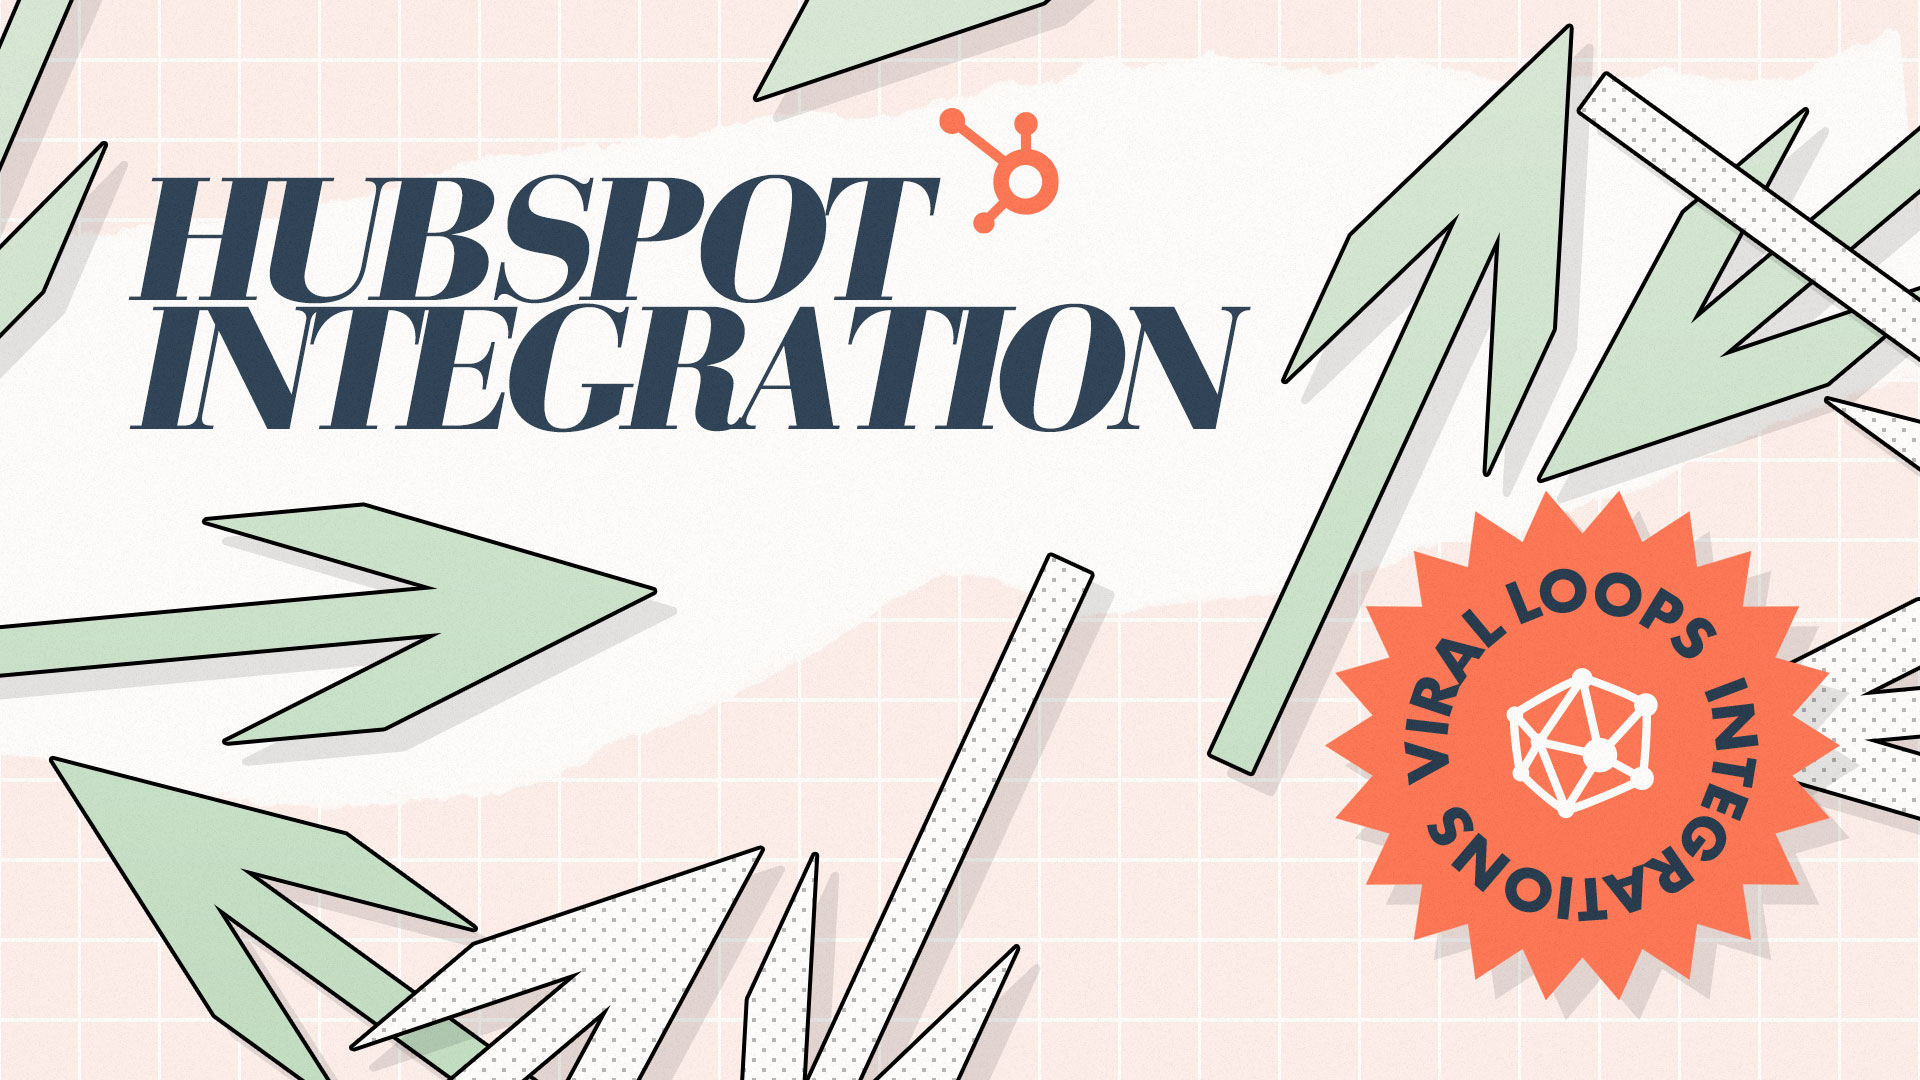 How to build a newsletter referral program with HubSpot